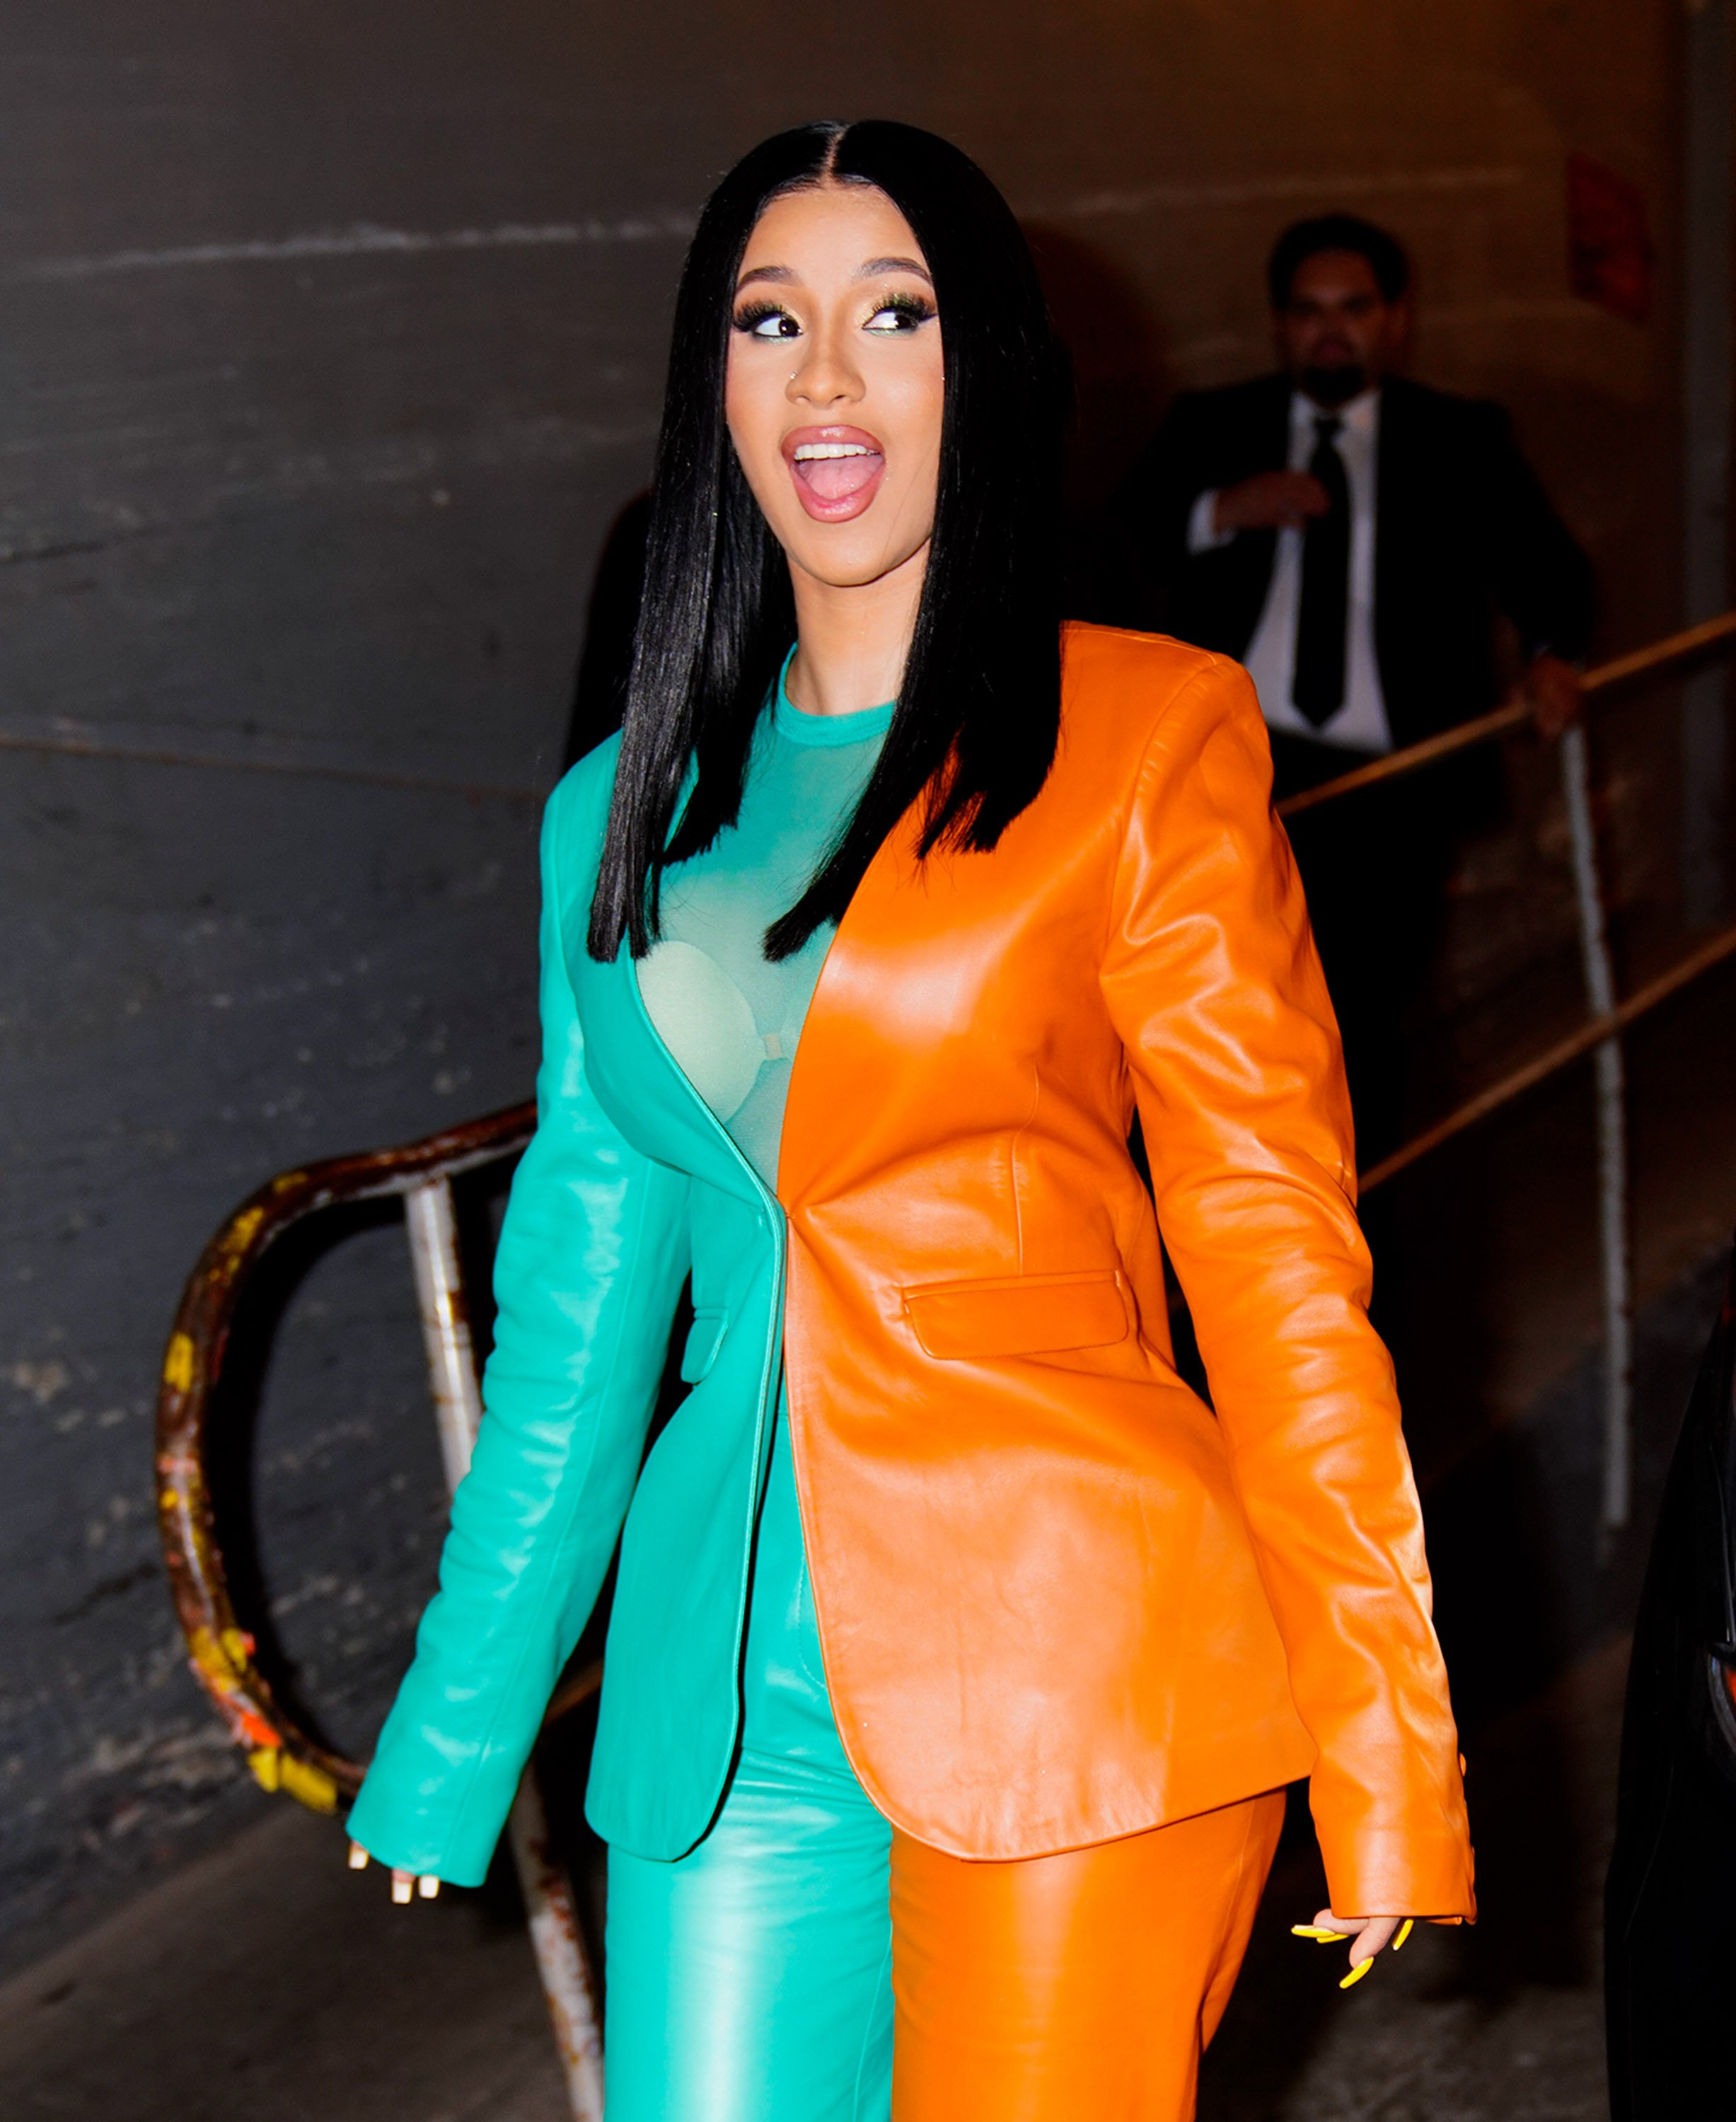 Cardi B at a Vogue event on October 10, 2019 in New York. | Photo: Getty Images